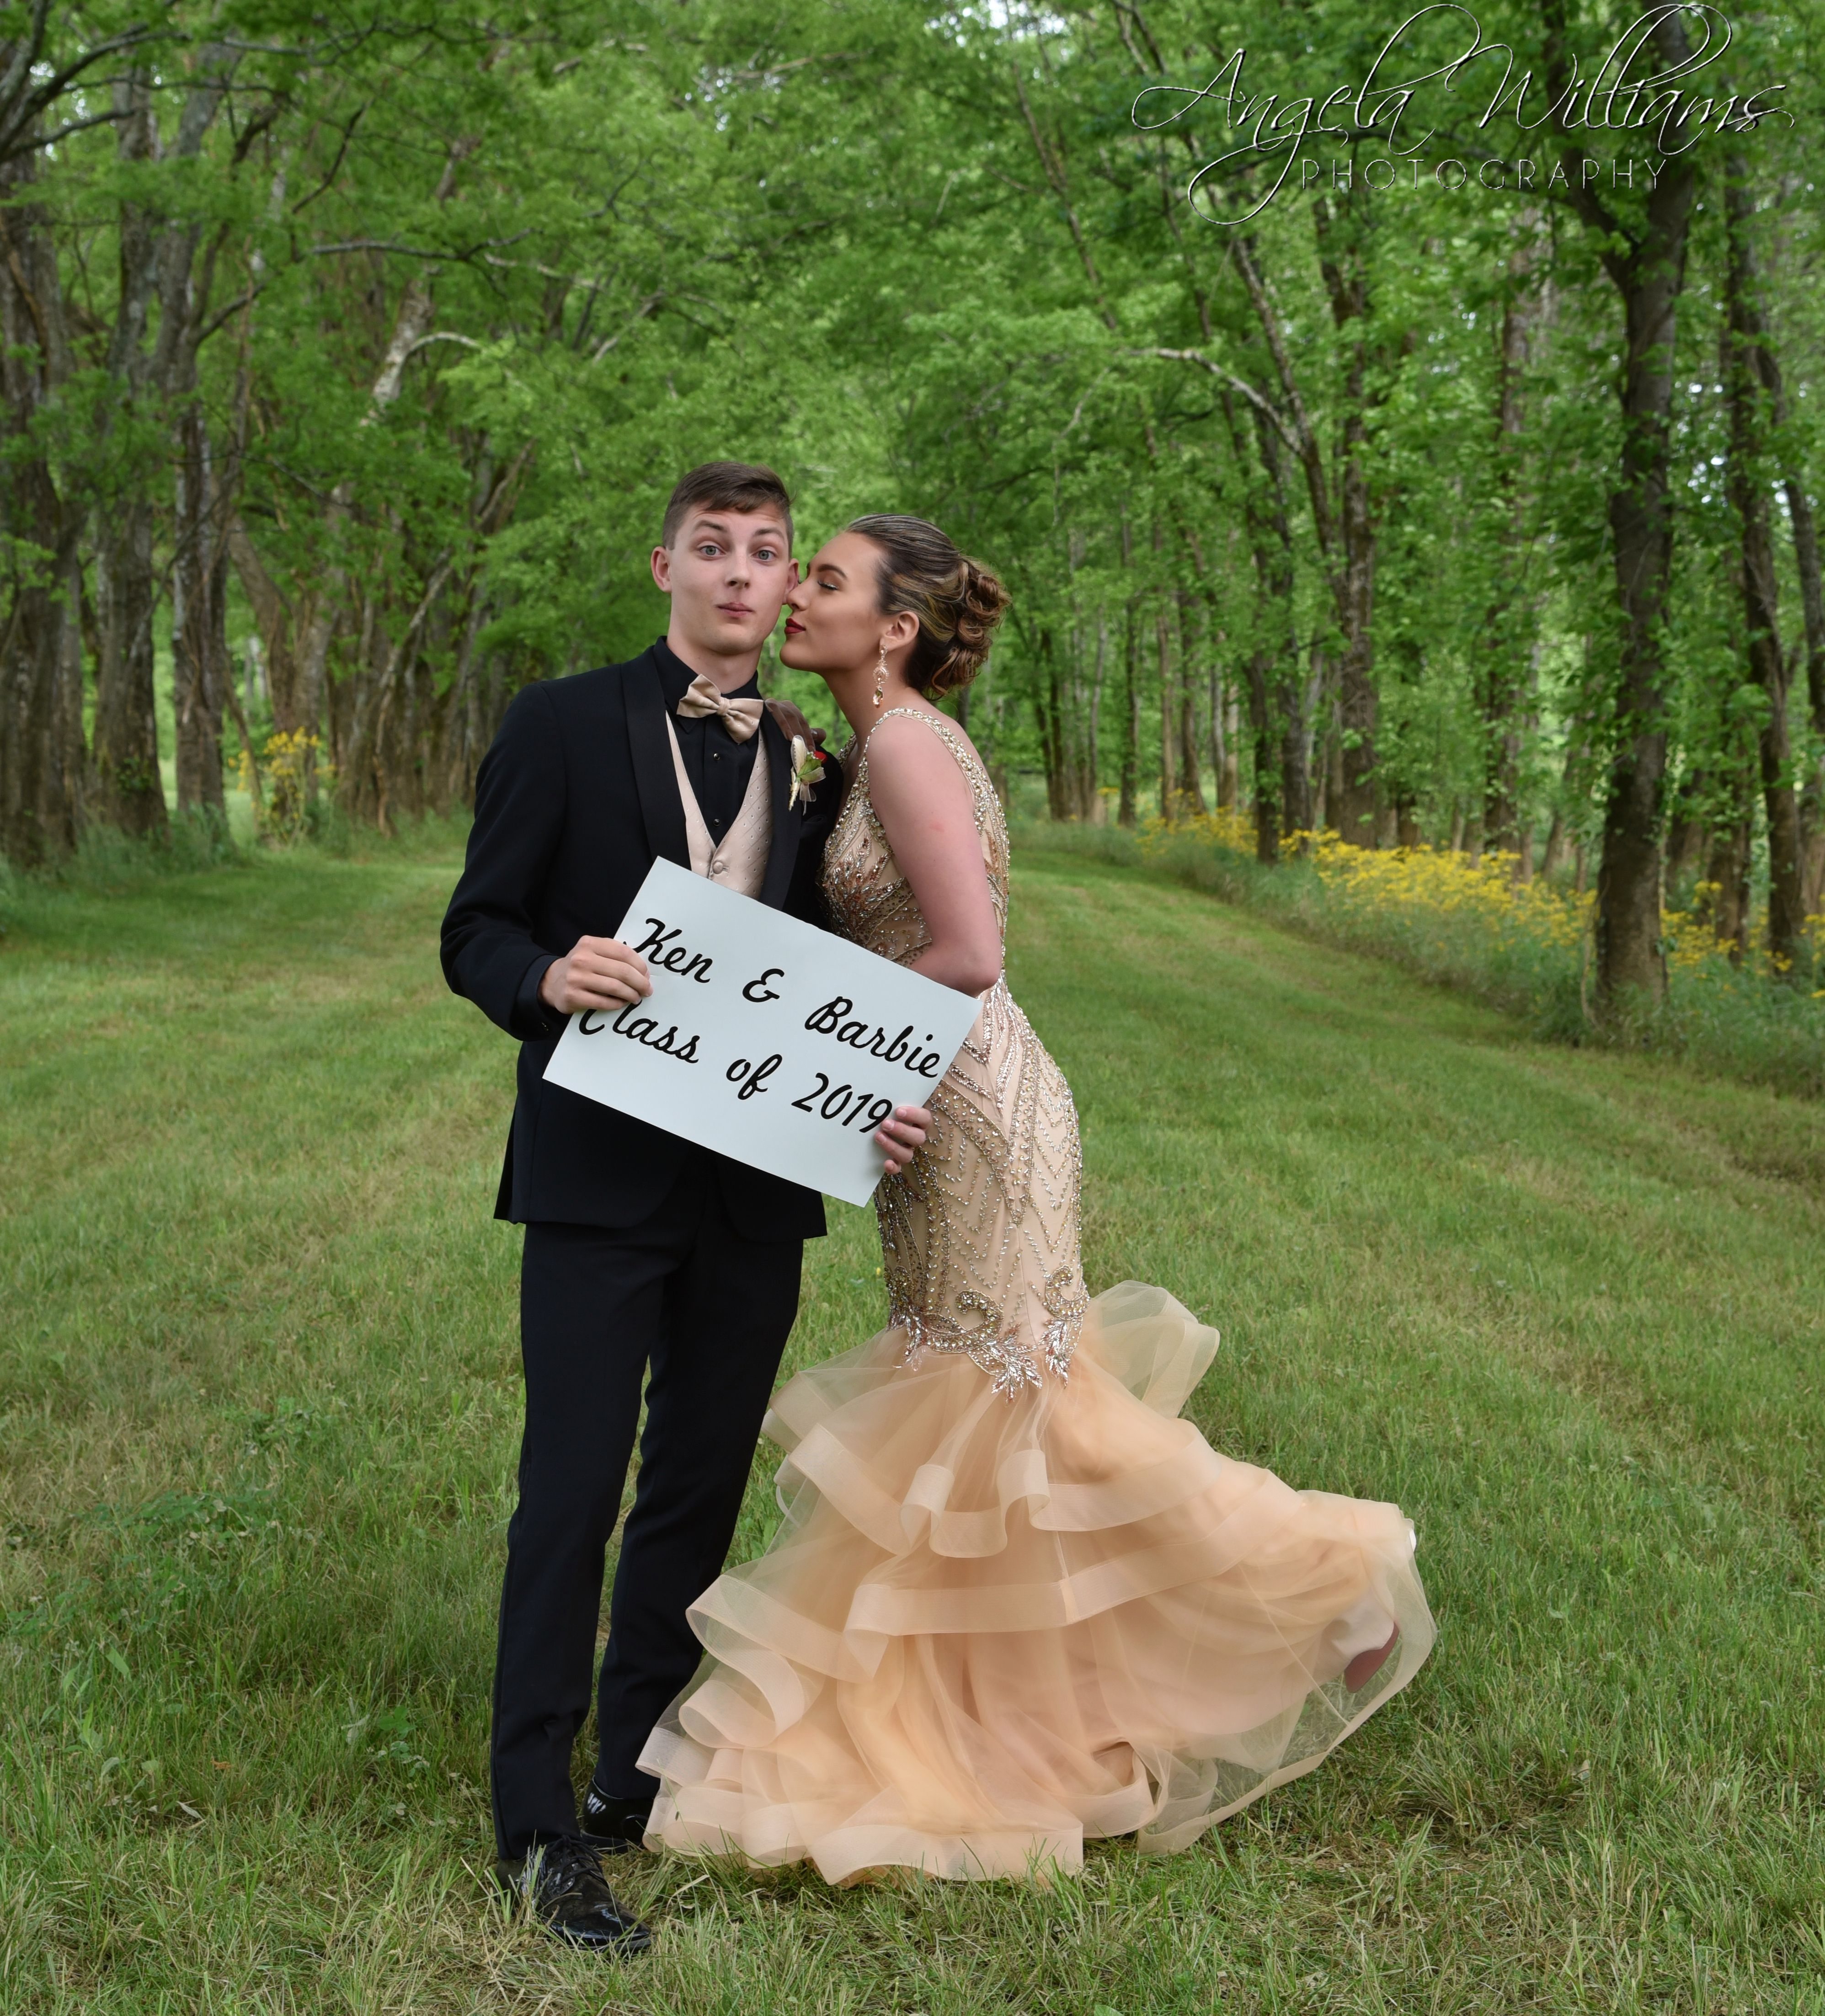 Prom Photo Ideas Prom Photography Prom Photos Prom Props